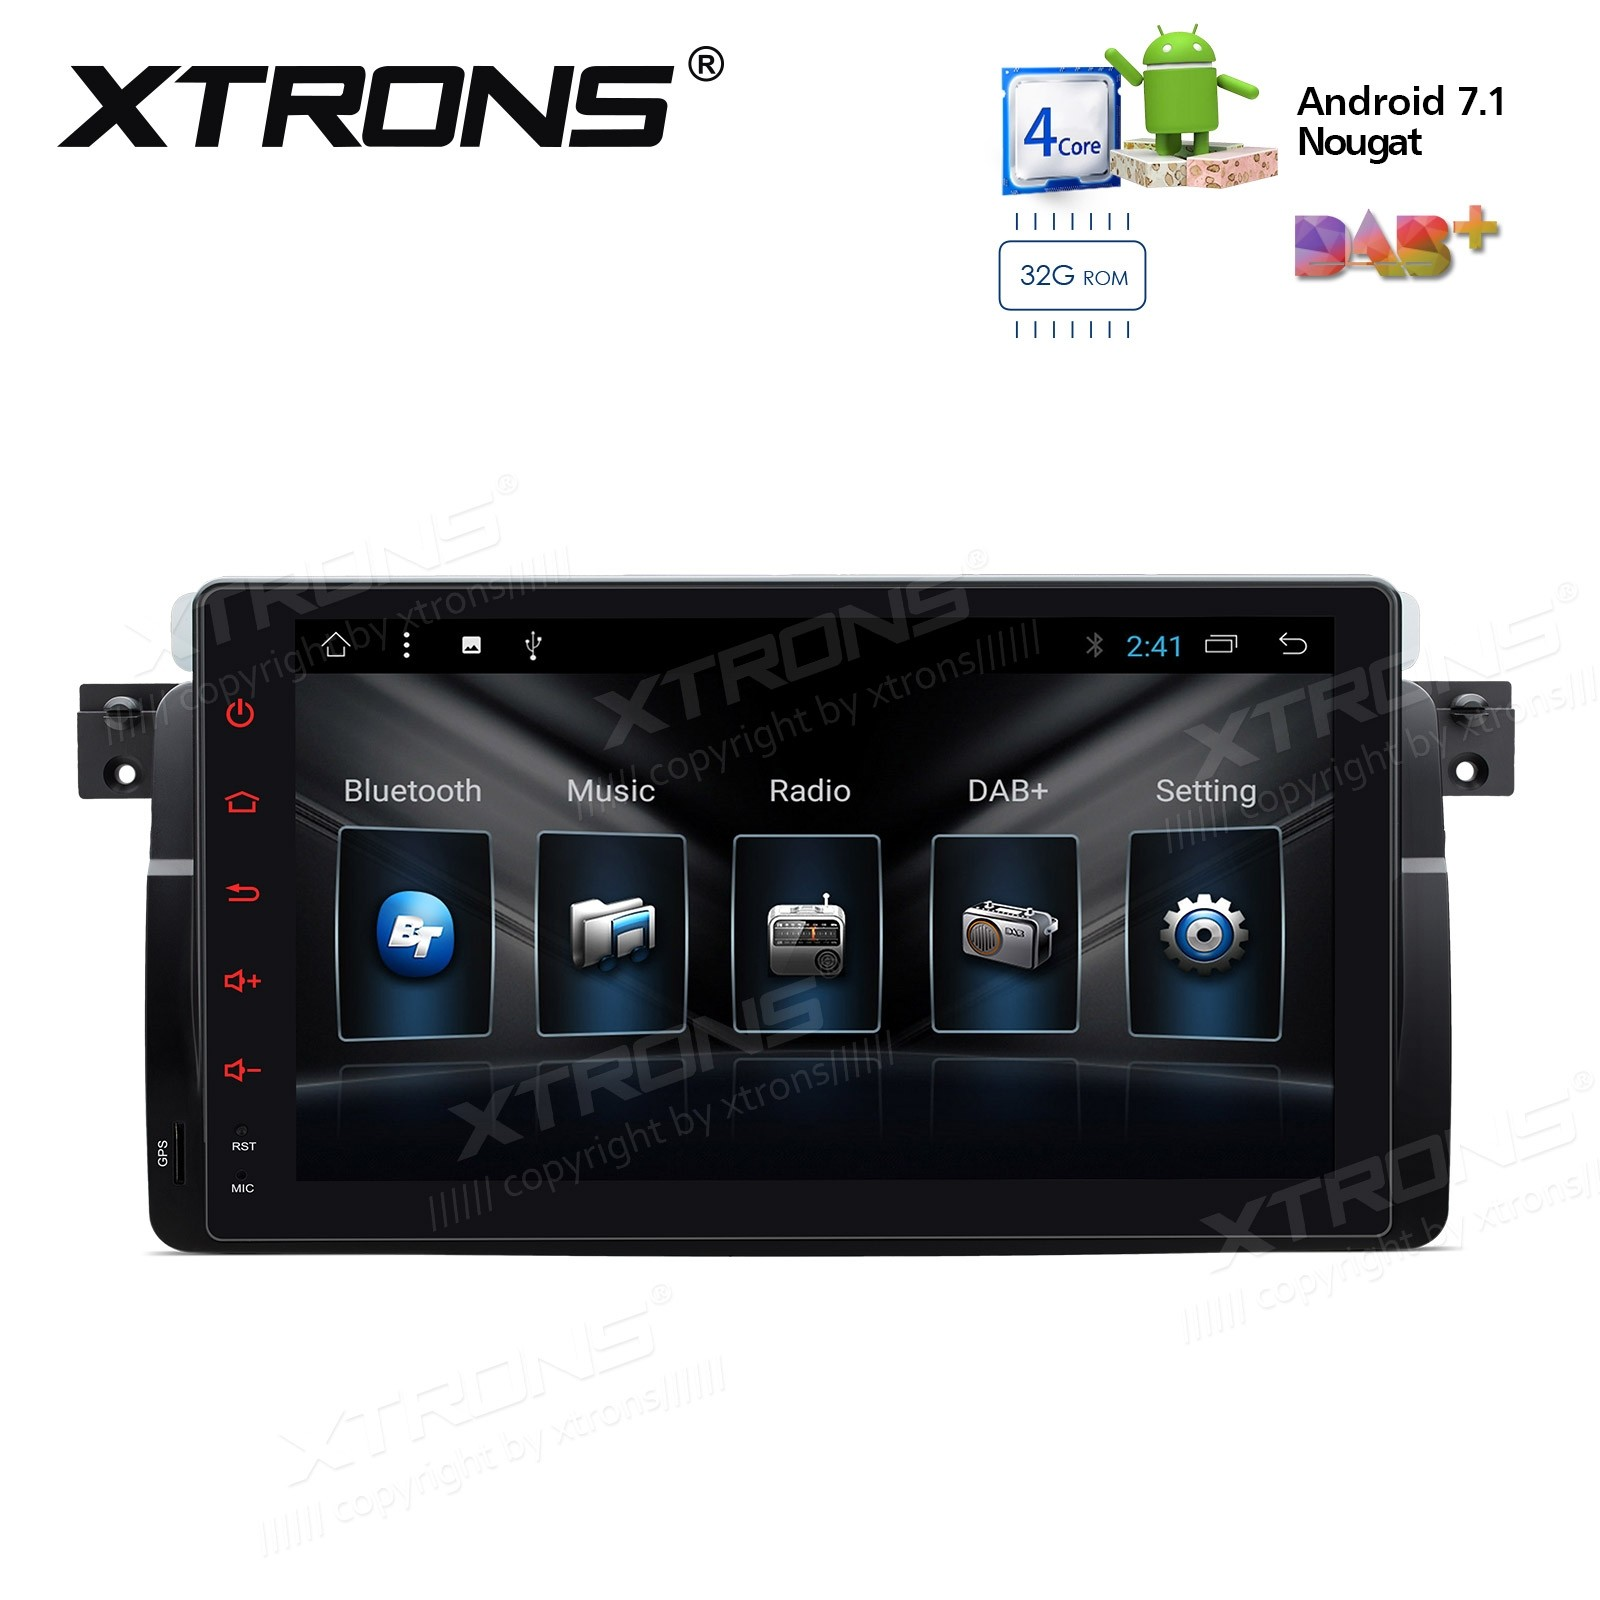 "9"" Android 7.1 Nougat Quad core 32GB ROM + 2GB DDR3 RAM Multimedia HD Digital Touch Screen Car Stereo Custom Fit for BMW / Rover / MG"